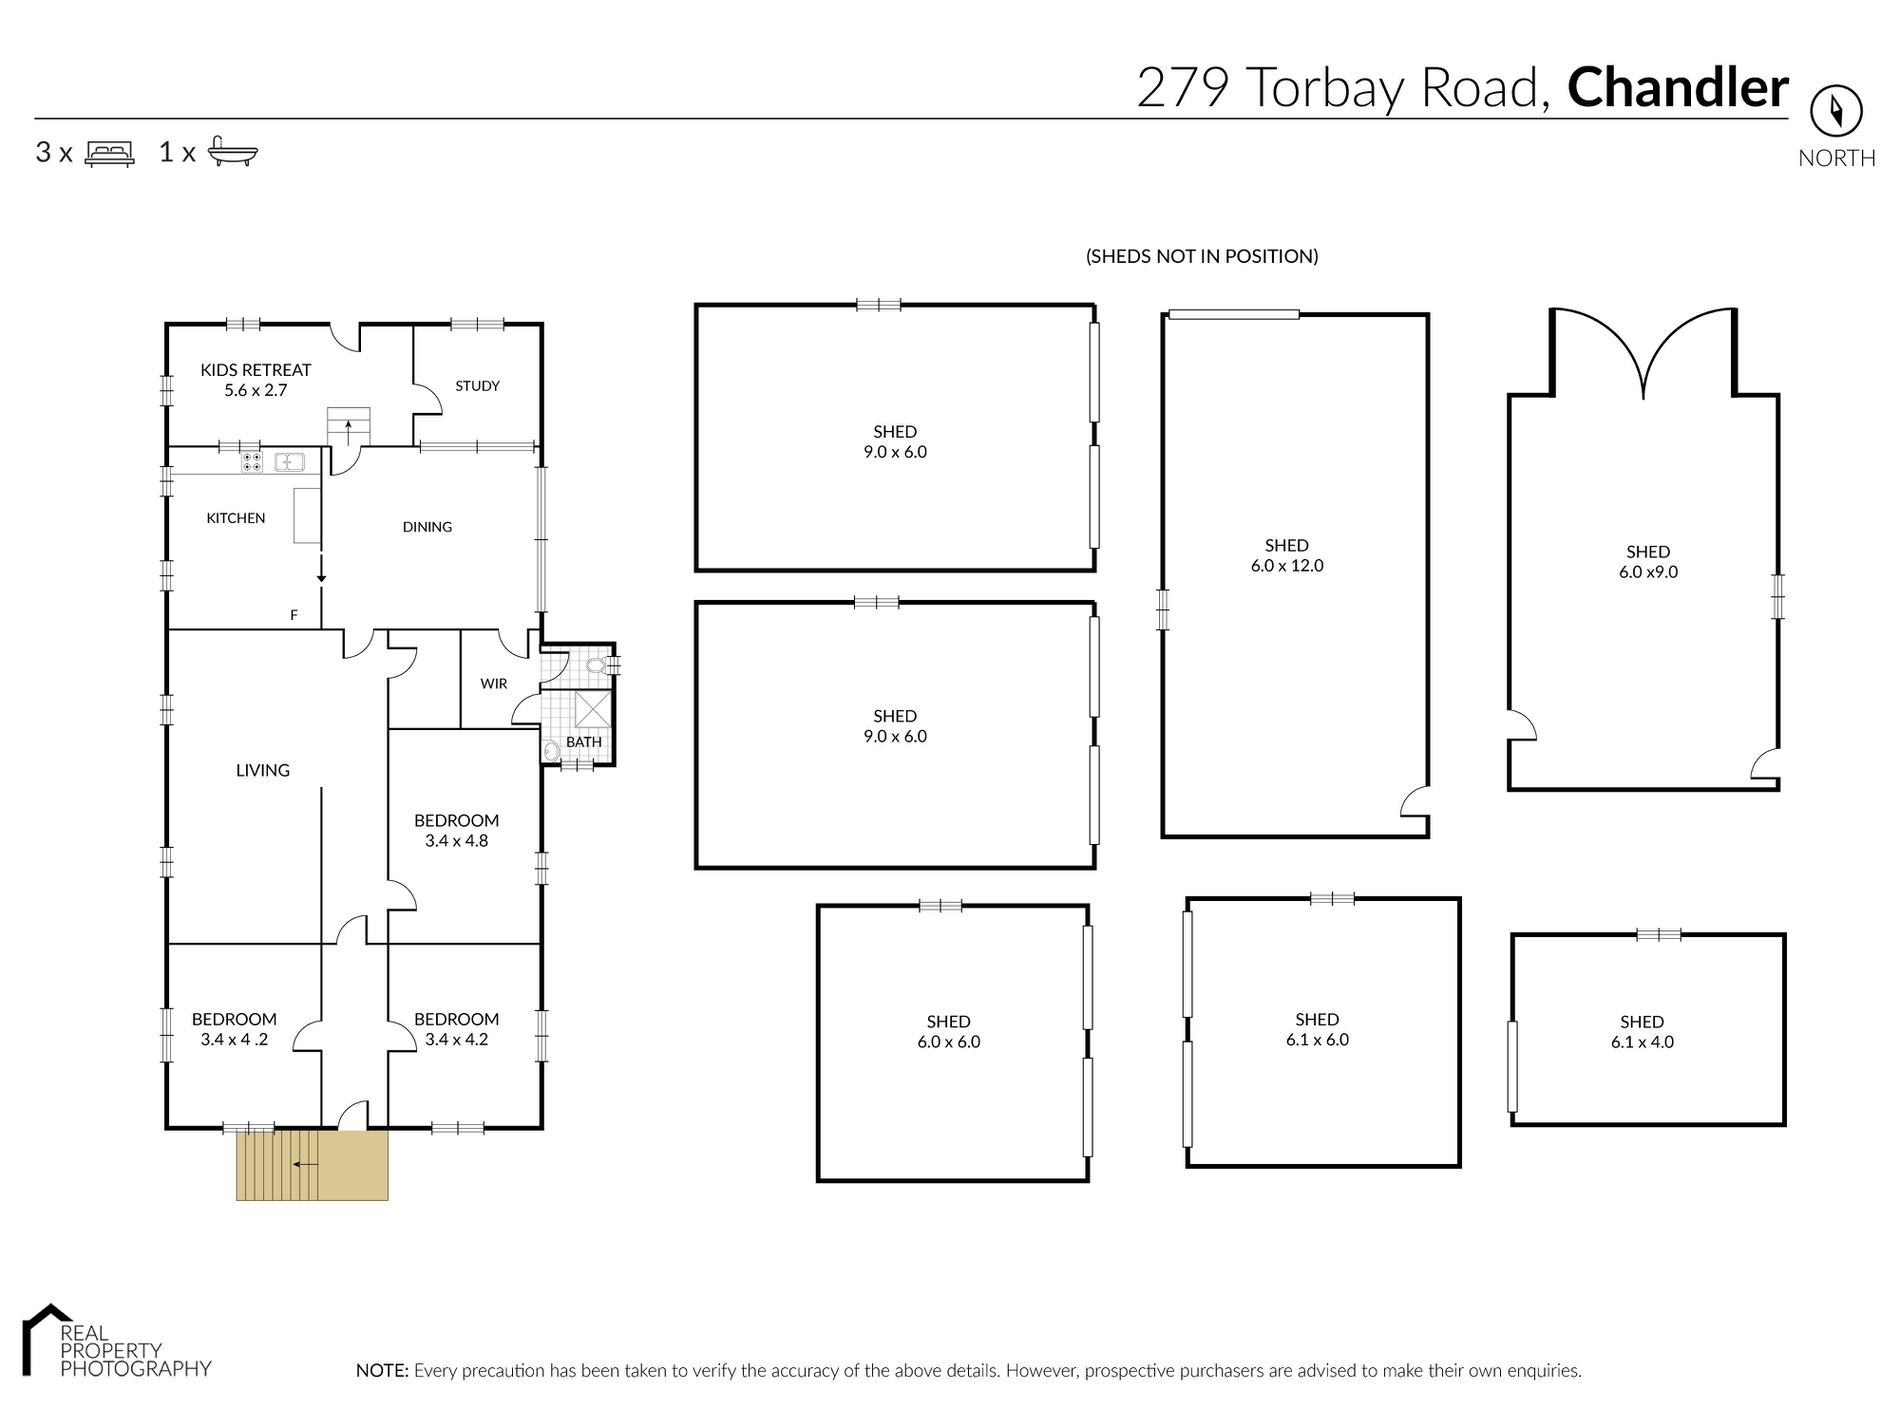 279 Torbay Road, Chandler